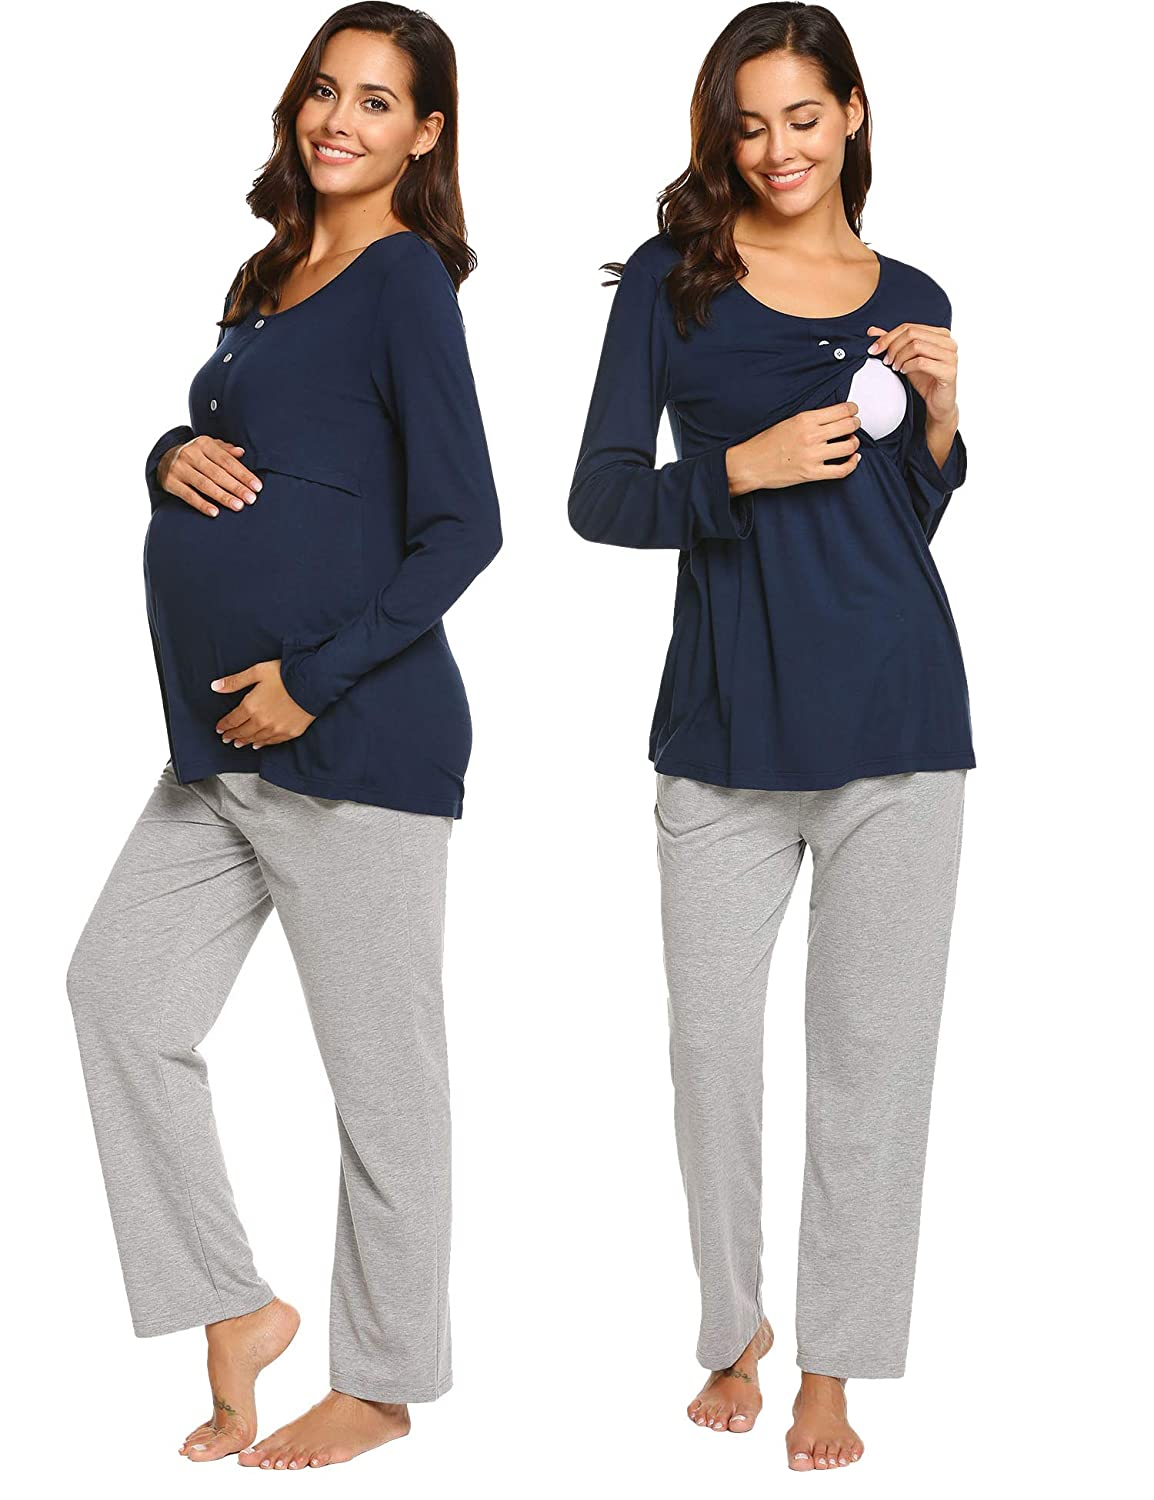 Ekouaer Women's Maternity & Nursing Pajamas Set Long Sleeve Tops and Long Pants Sleepwear Set *EKV007149